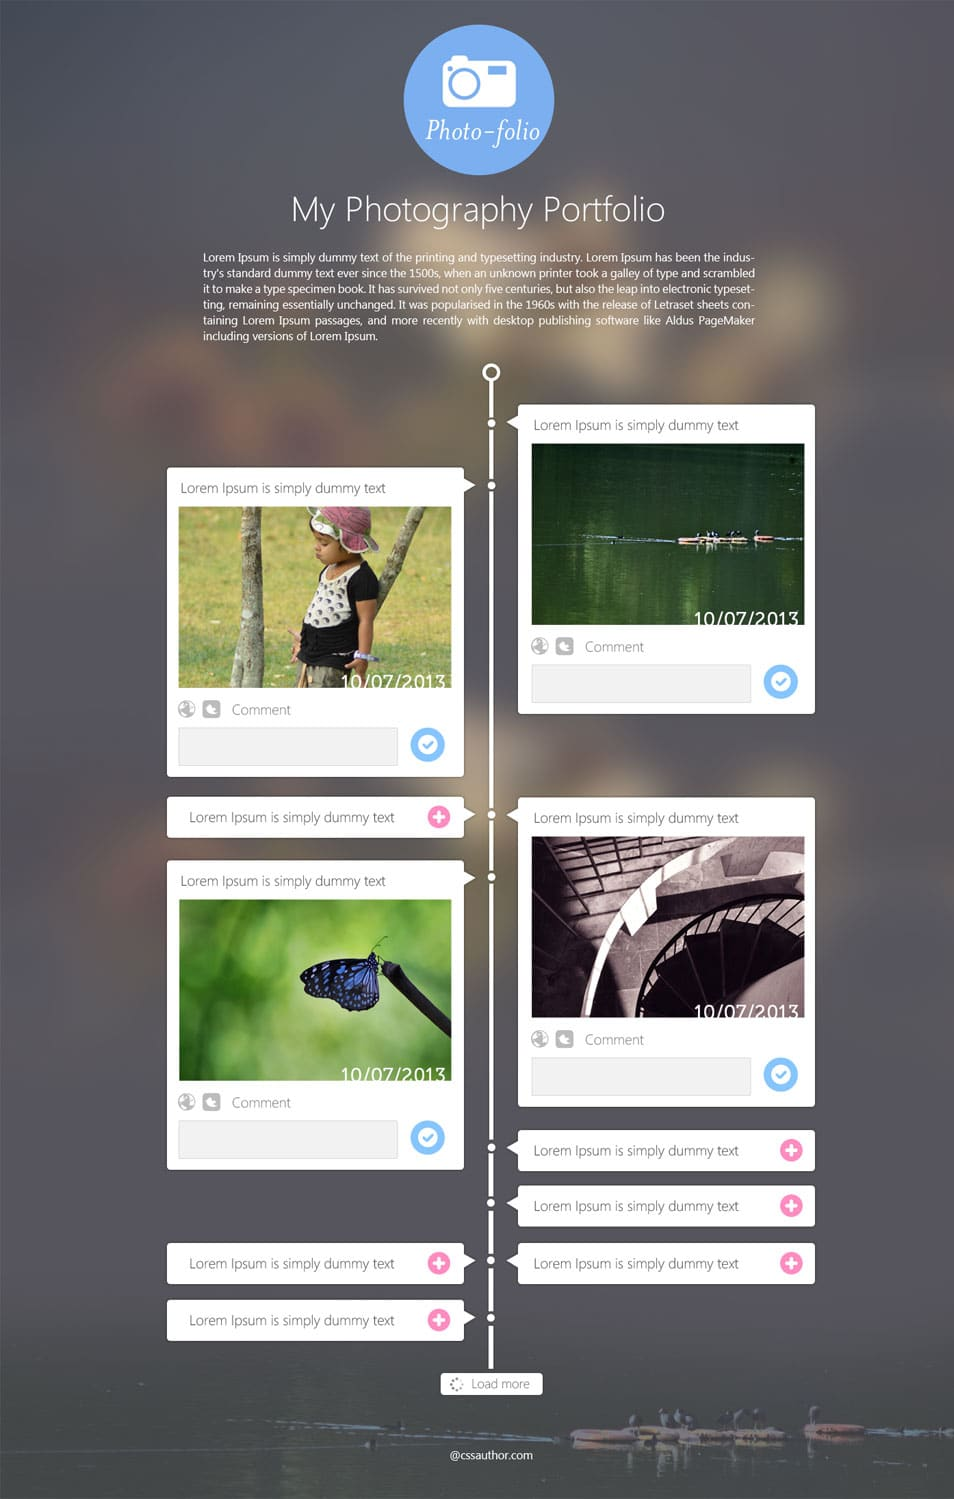 Photography Portfolio Website Template Design PSD - cssauthor.com